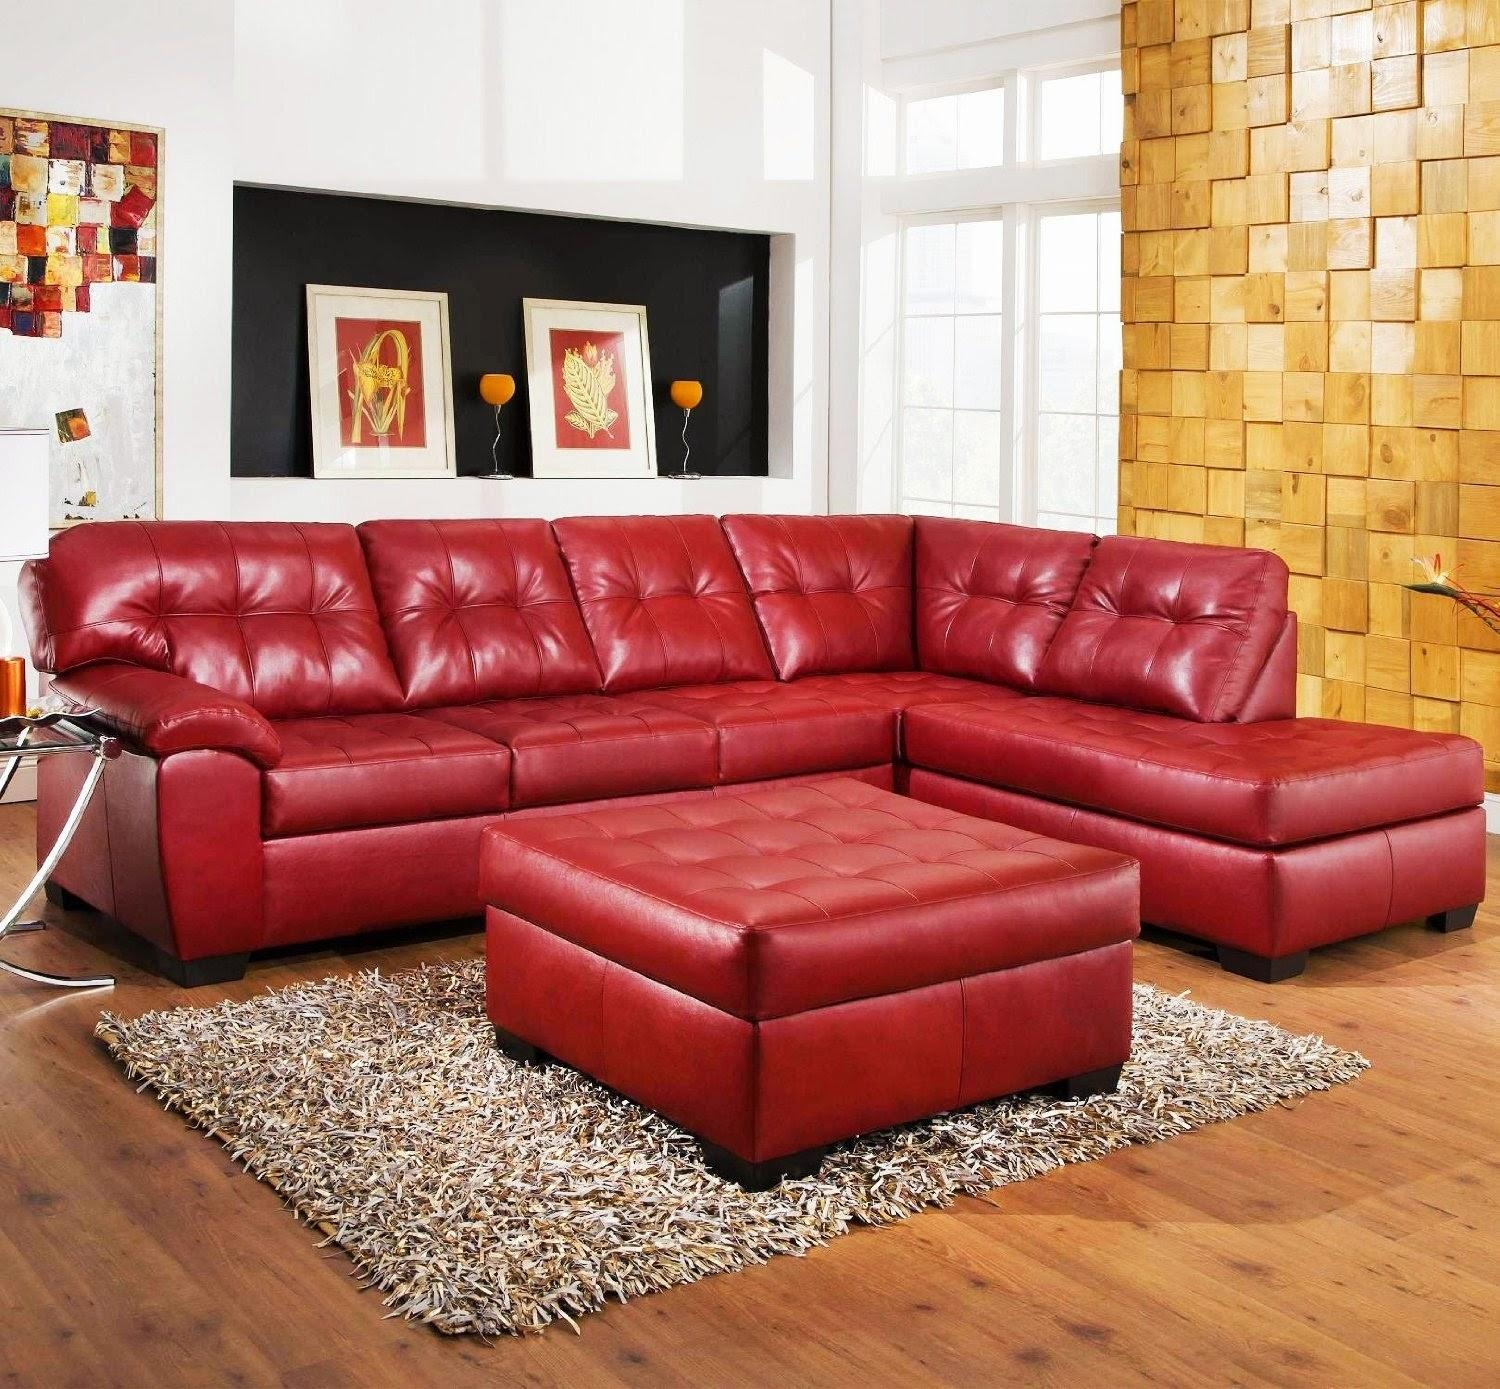 Furniture: Comfy Design Of Oversized Couch For Charming Living Regarding Sectional With Oversized Ottoman (Image 5 of 20)